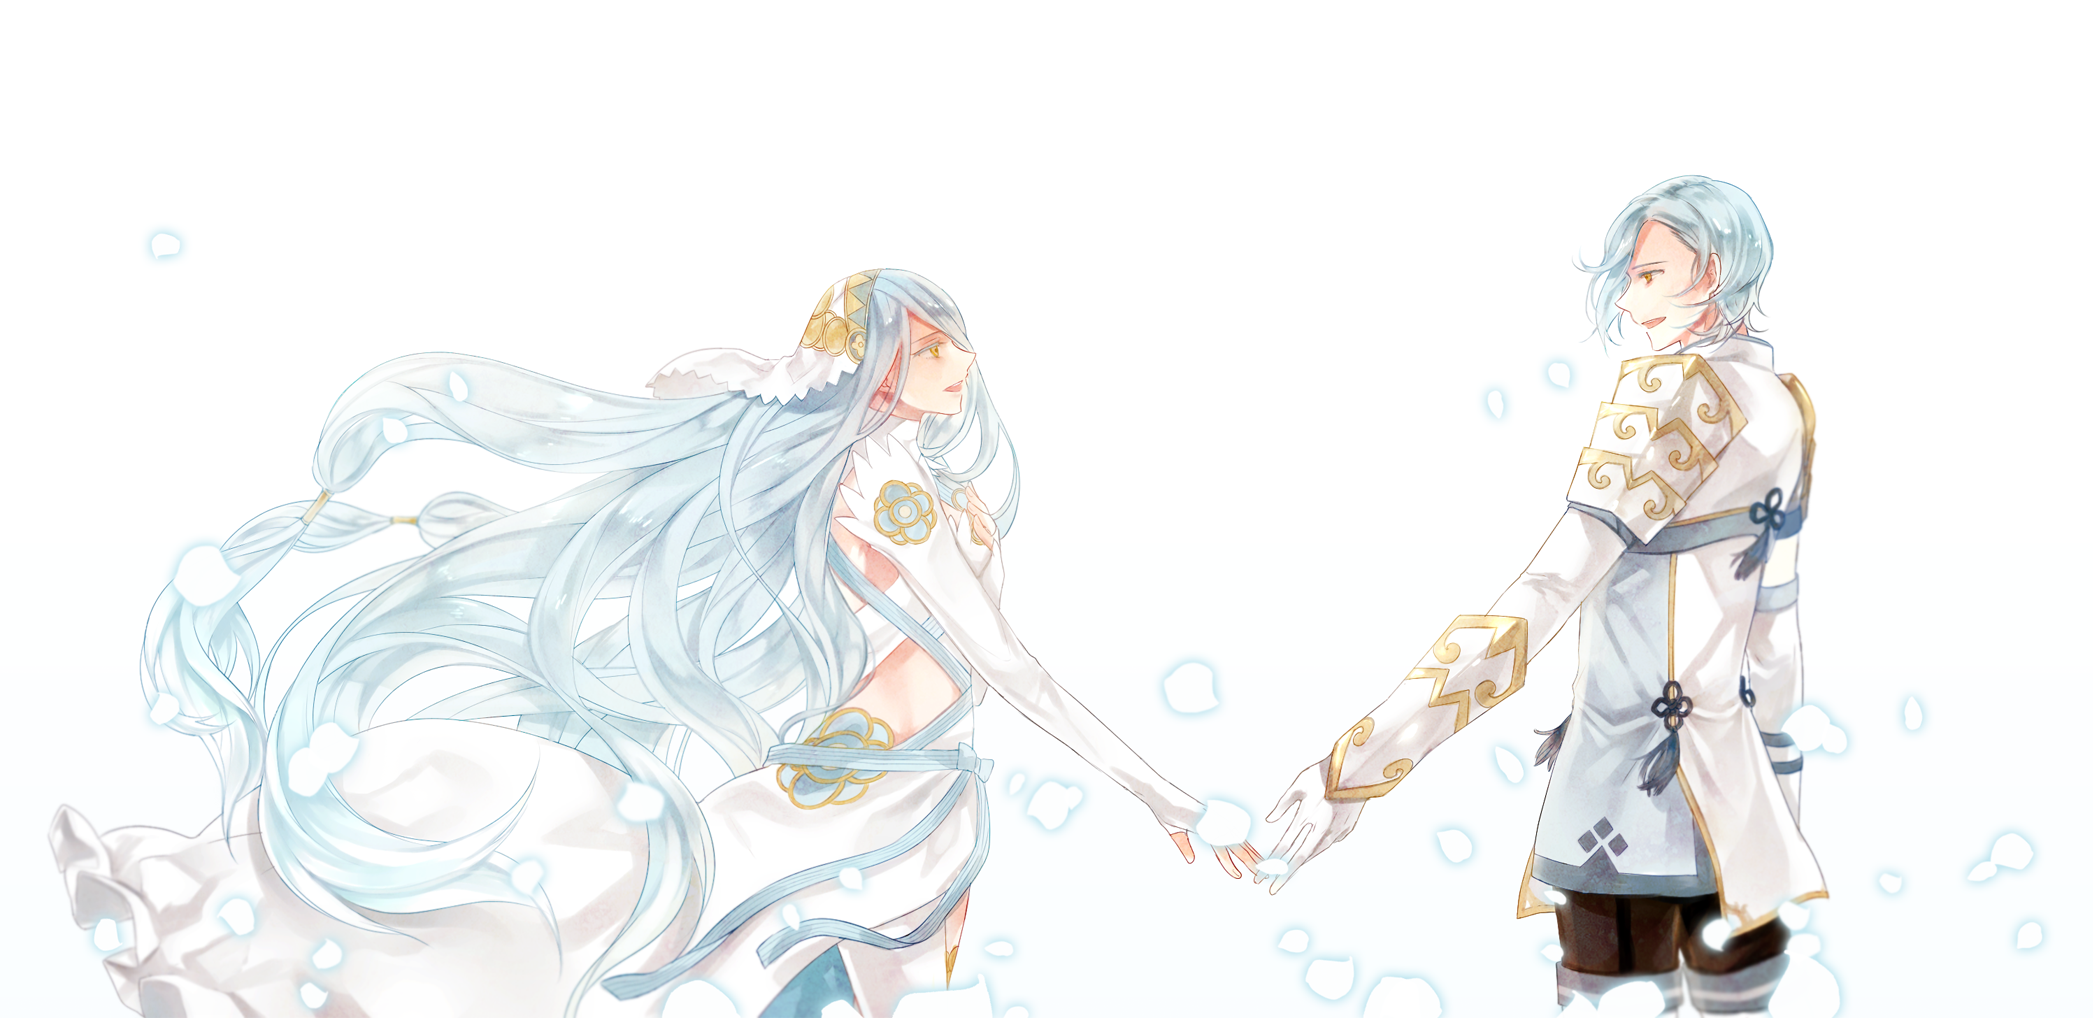 azura and camilla wallpaper - photo #8